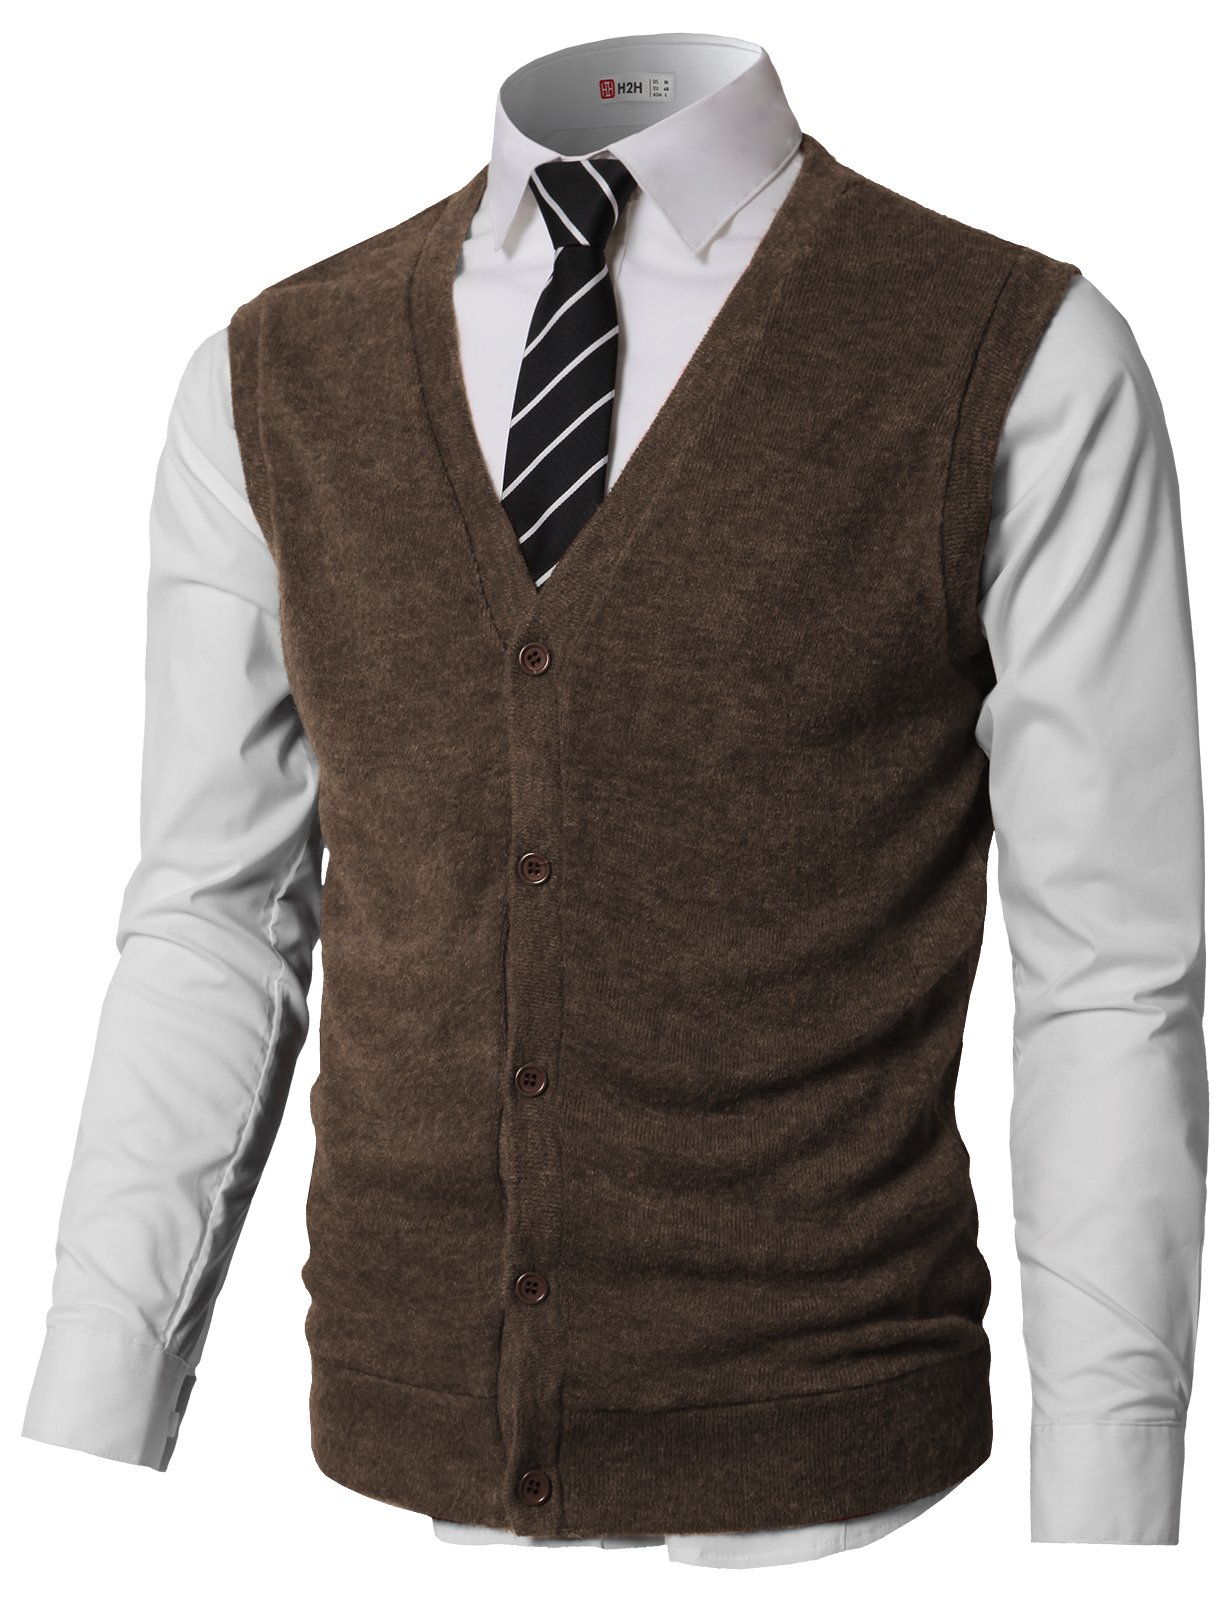 H2H Men's Classic Knit Cardigan Sweater Vest With Button Brown US L/Asia XL (CMOV046) by H2H